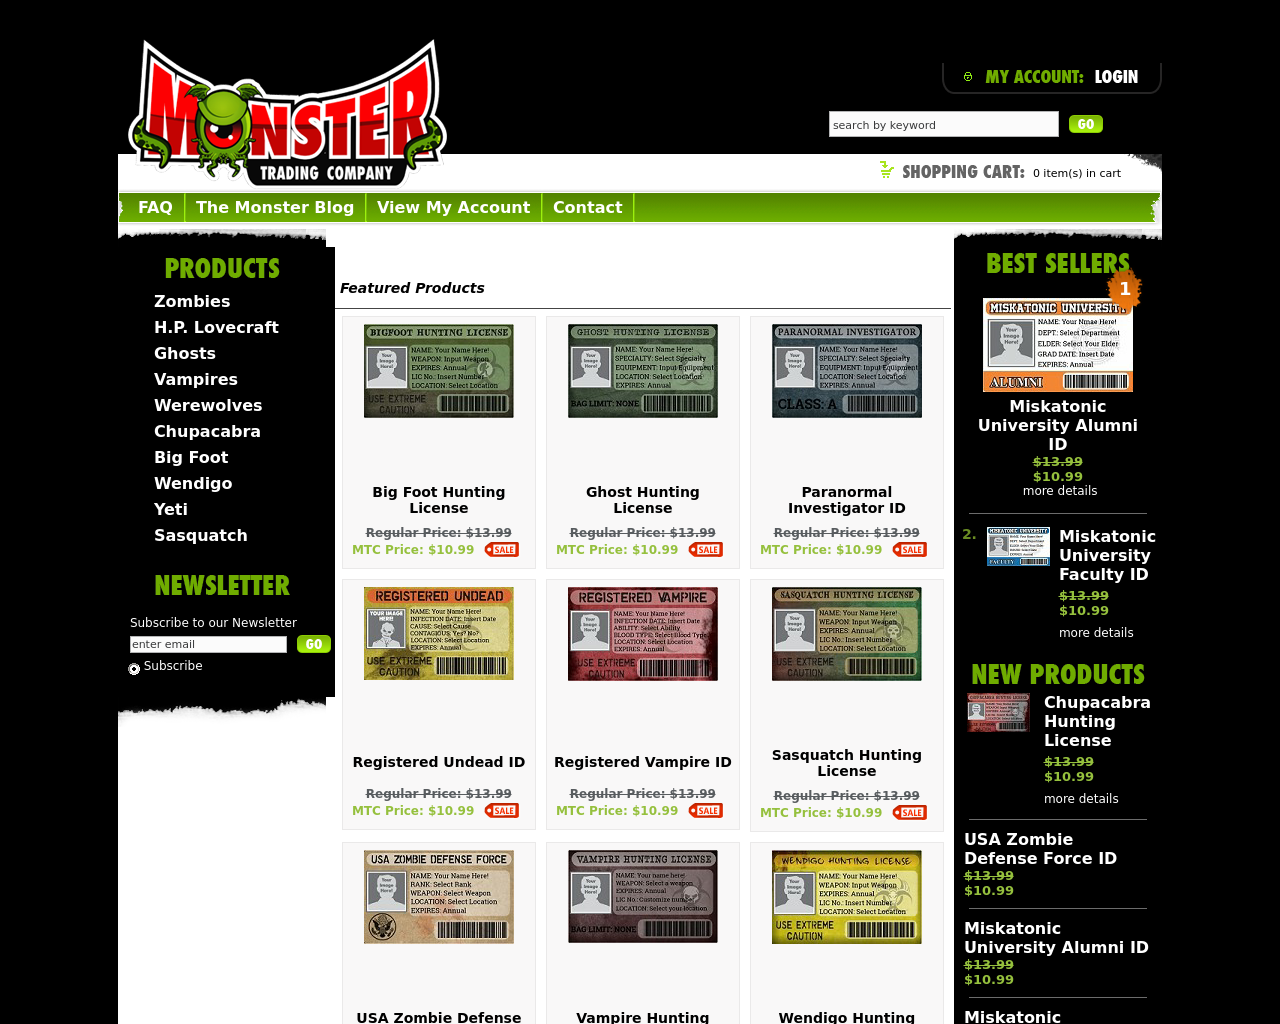 Monster-Trading-Company-Advertising-Reviews-Pricing